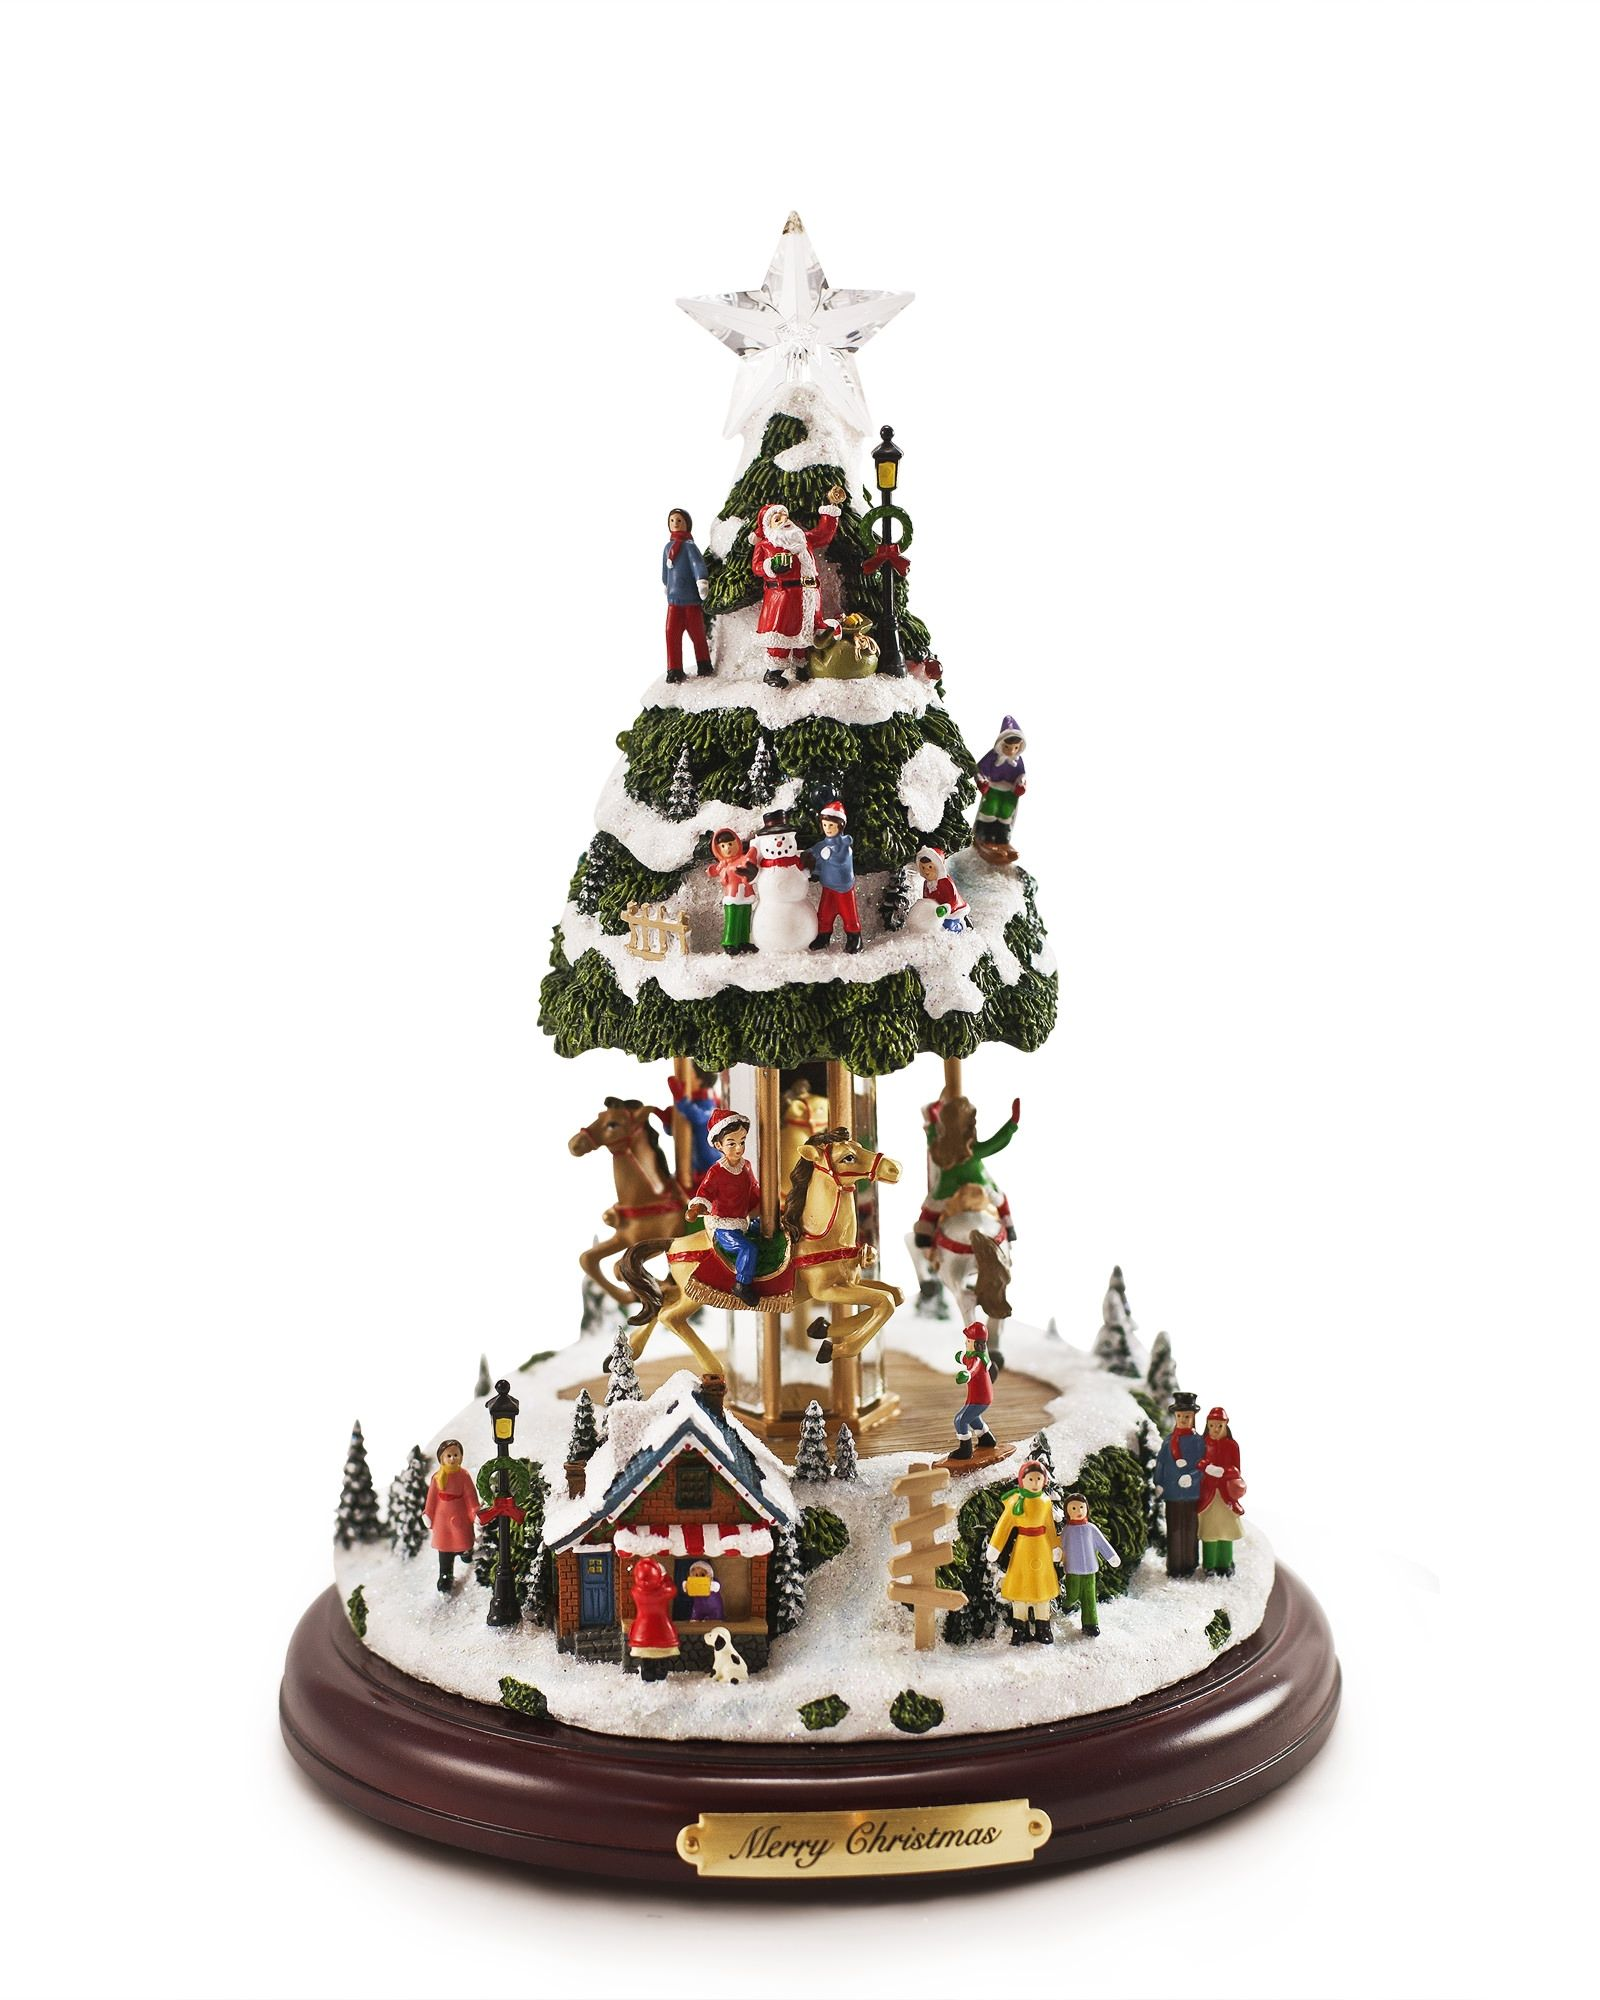 Our Animated Musical Tree Is A Miniature Christmas Village